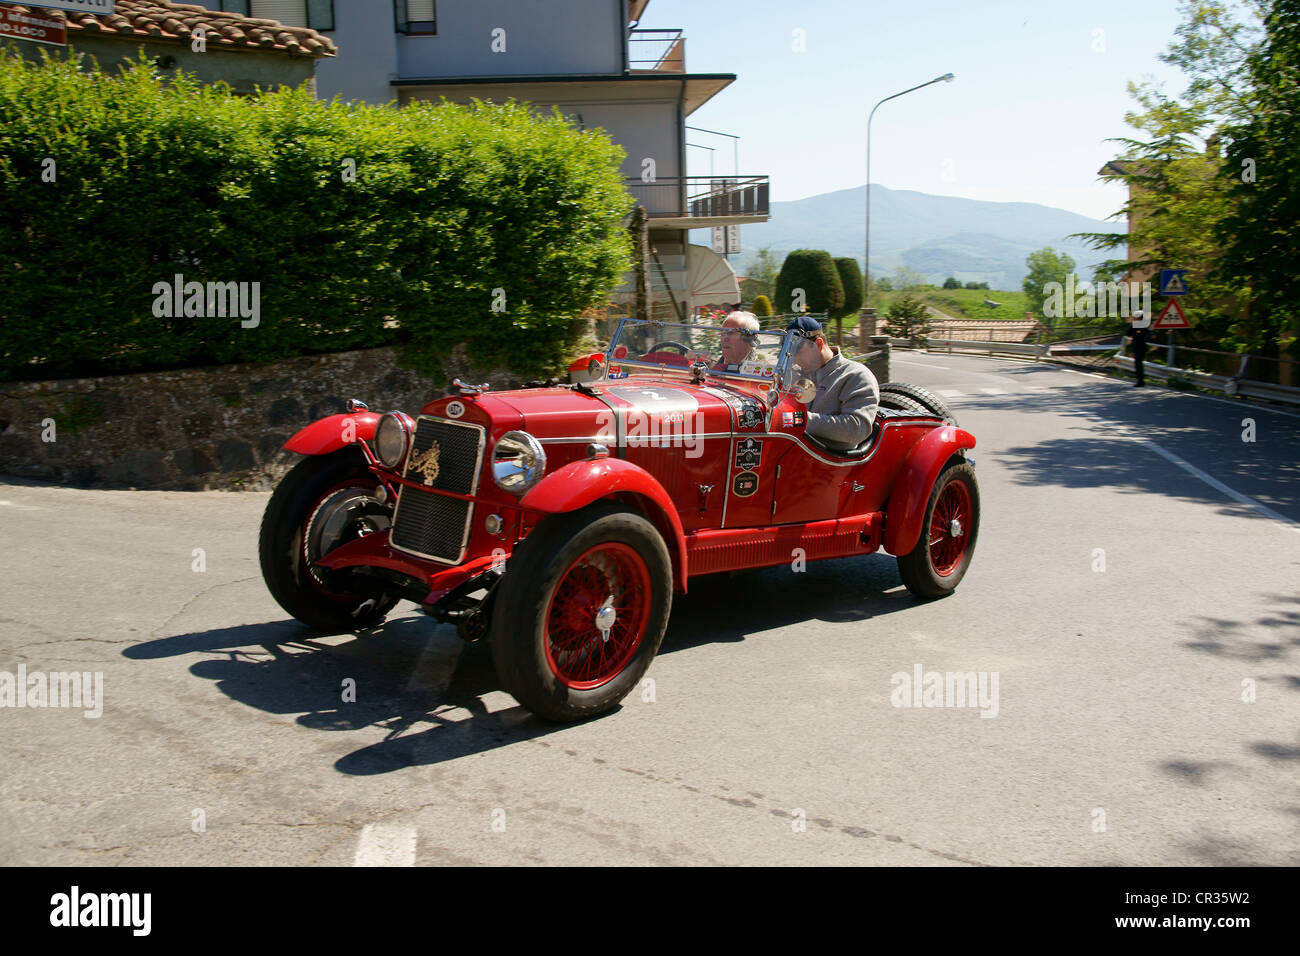 OM 665 Superba, 1929 3, Johann Georg Fendt, Corinna Fendt, vintage car race Mille Miglia or 1000 Miglia, Radicofani, Stock Photo